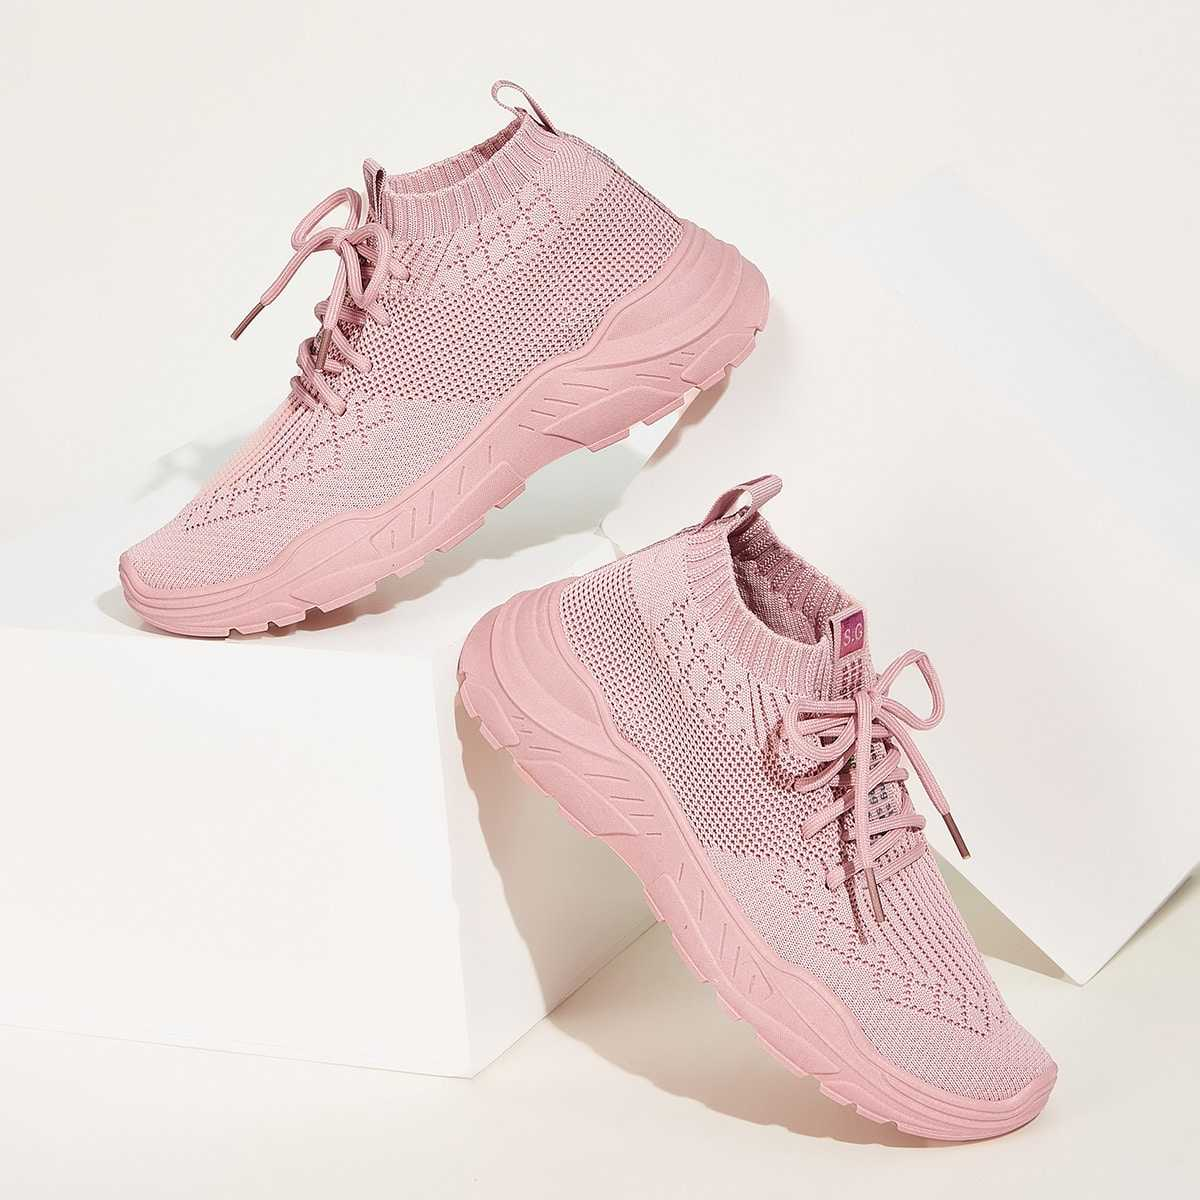 Lace-up Front Knit Trainers in Pink by ROMWE on GOOFASH